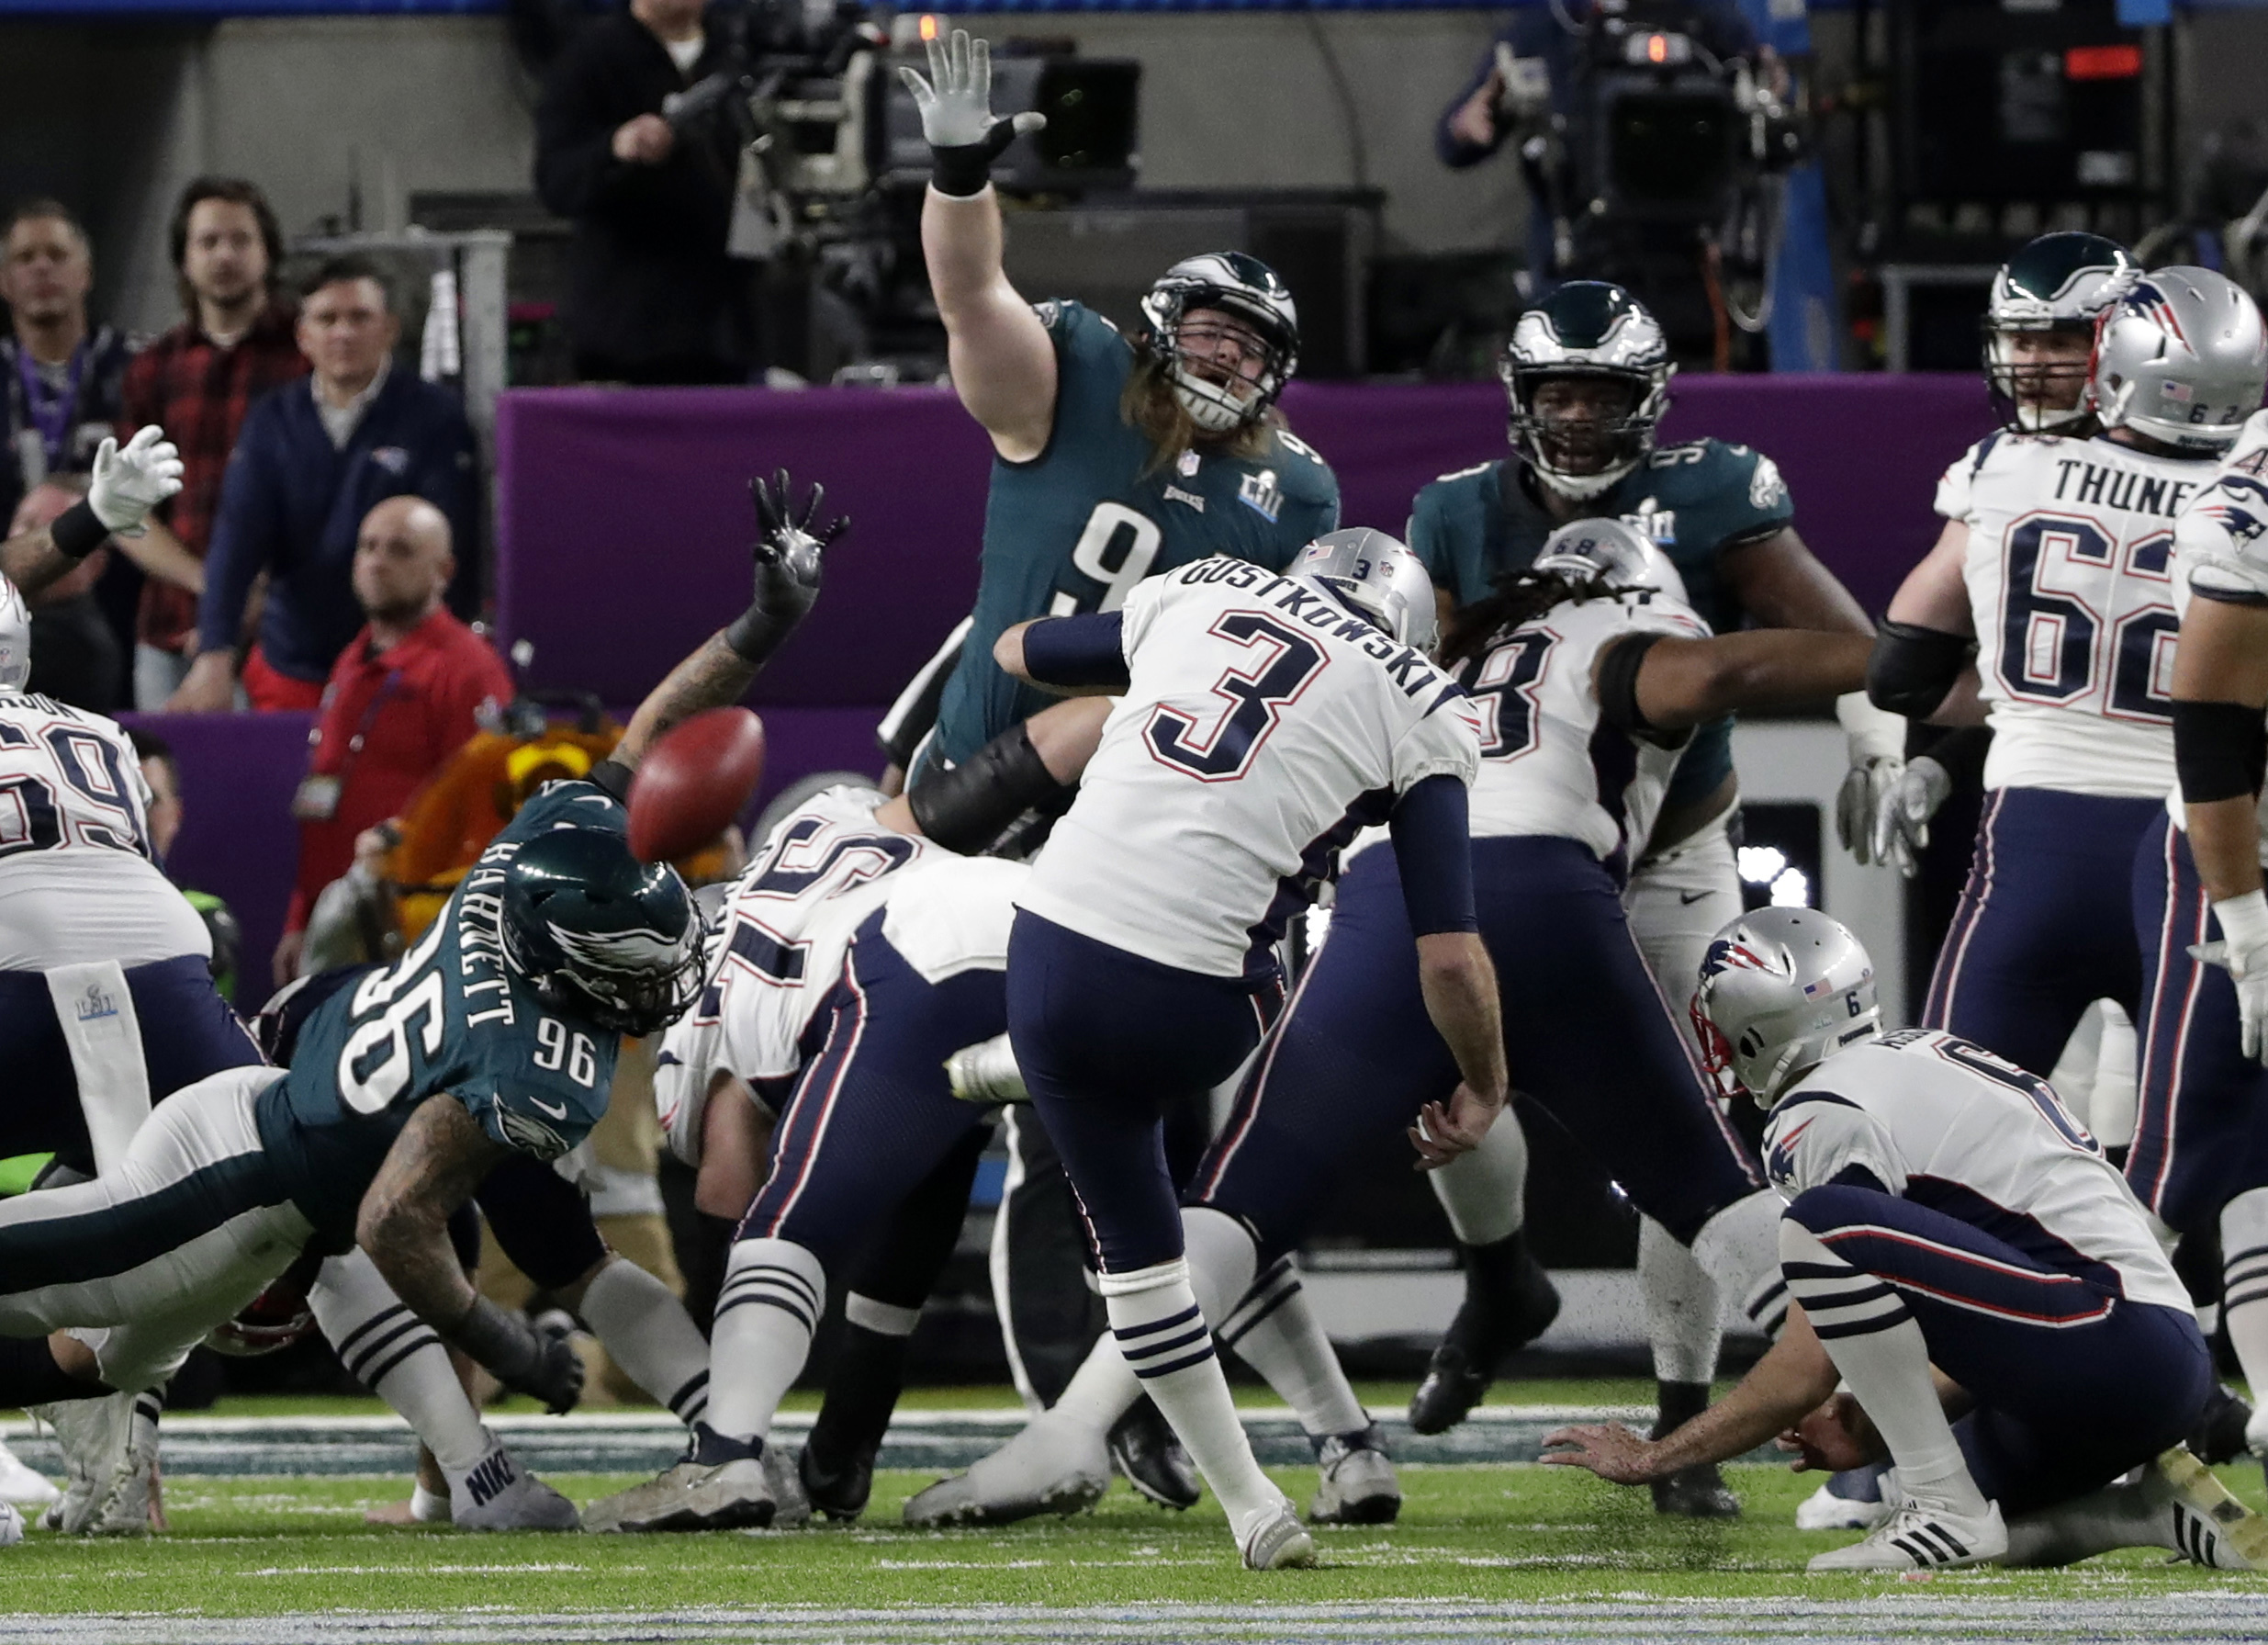 "<div class=""meta image-caption""><div class=""origin-logo origin-image ap""><span>AP</span></div><span class=""caption-text"">New England Patriots kicker Stephen Gostkowski (3), misses a field goal during the first half of the NFL Super Bowl 52 , Sunday, Feb. 4, 2018, in Minneapolis. (AP Photo/Tony Gutierrez)</span></div>"